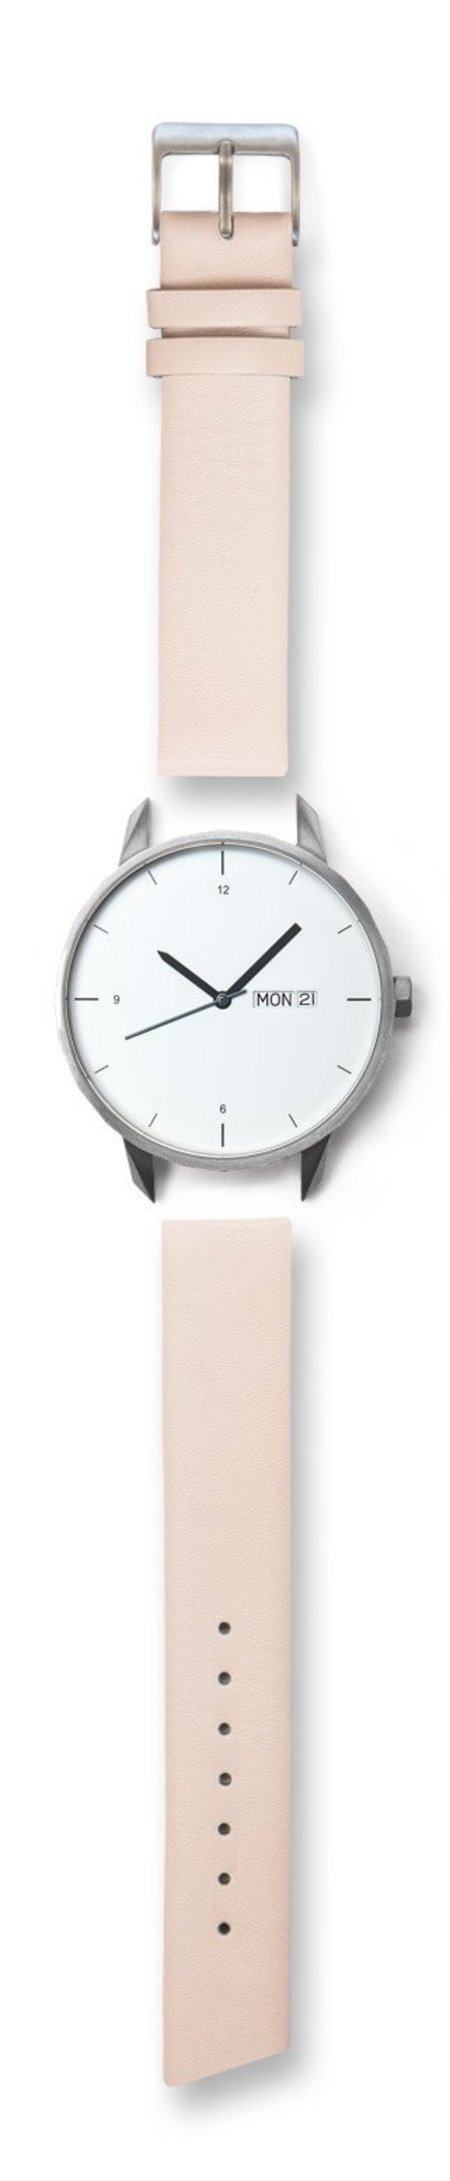 Unisex Tinker Watches 42mm Silver Watch Nude Strap